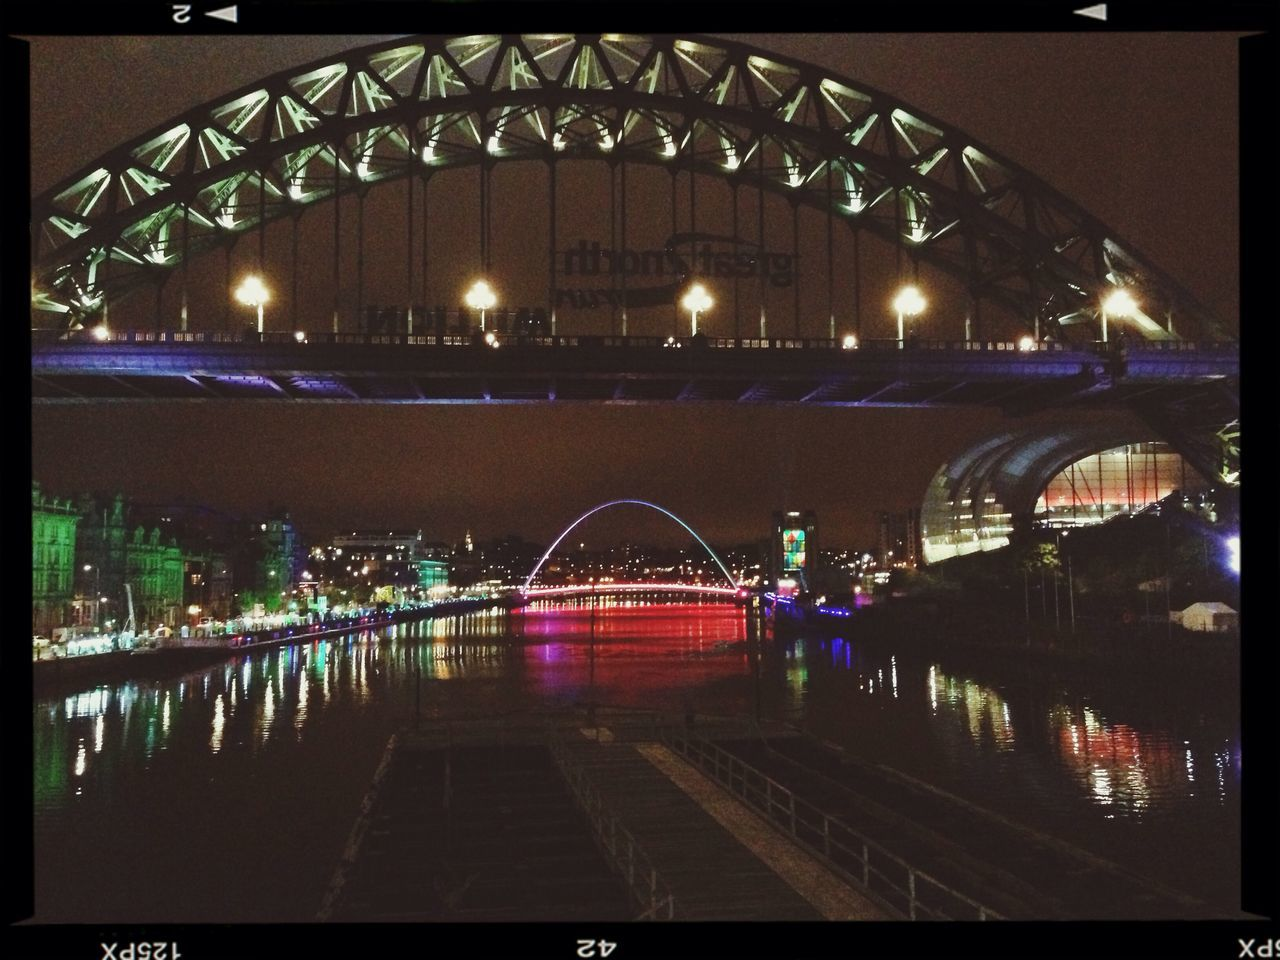 Tyne Bridge The Sage Newcastle Newcastle Quayside Cities At Night River Tyne The North East